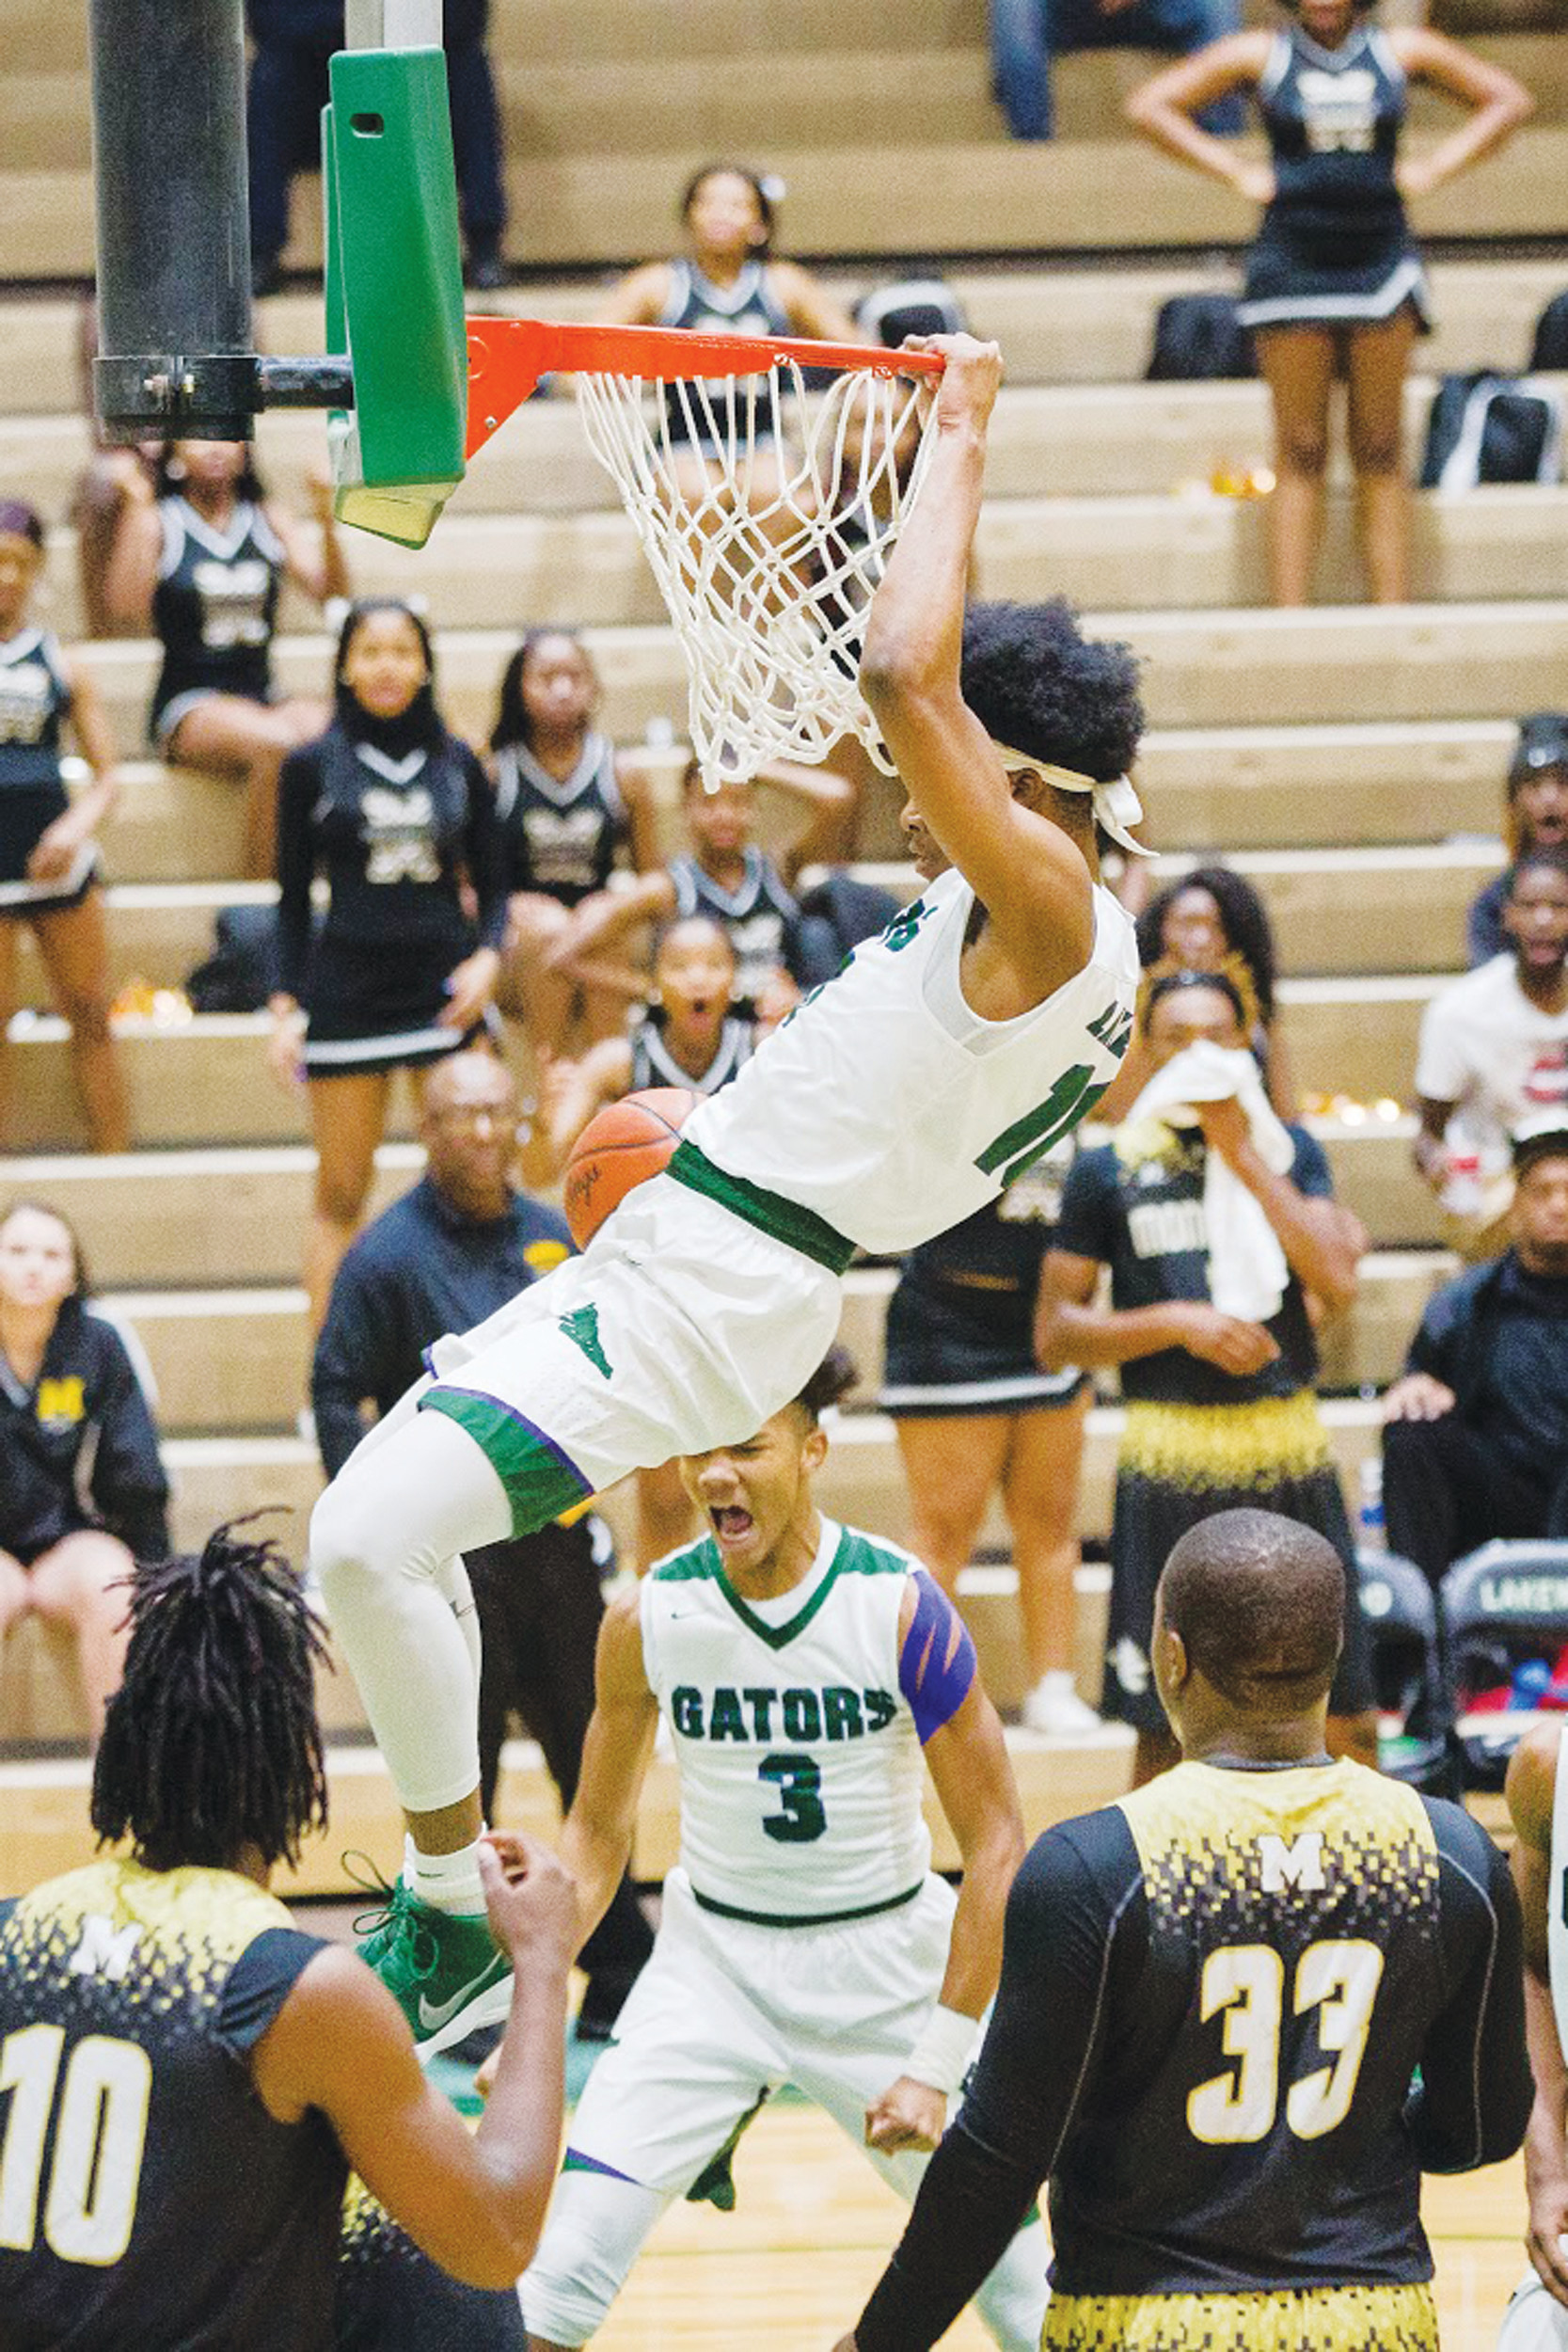 Lakewood's Juwan Perdue throws down a dunk during the Gators' 56-37 victory over Manning on Tuesday at The Swamp.